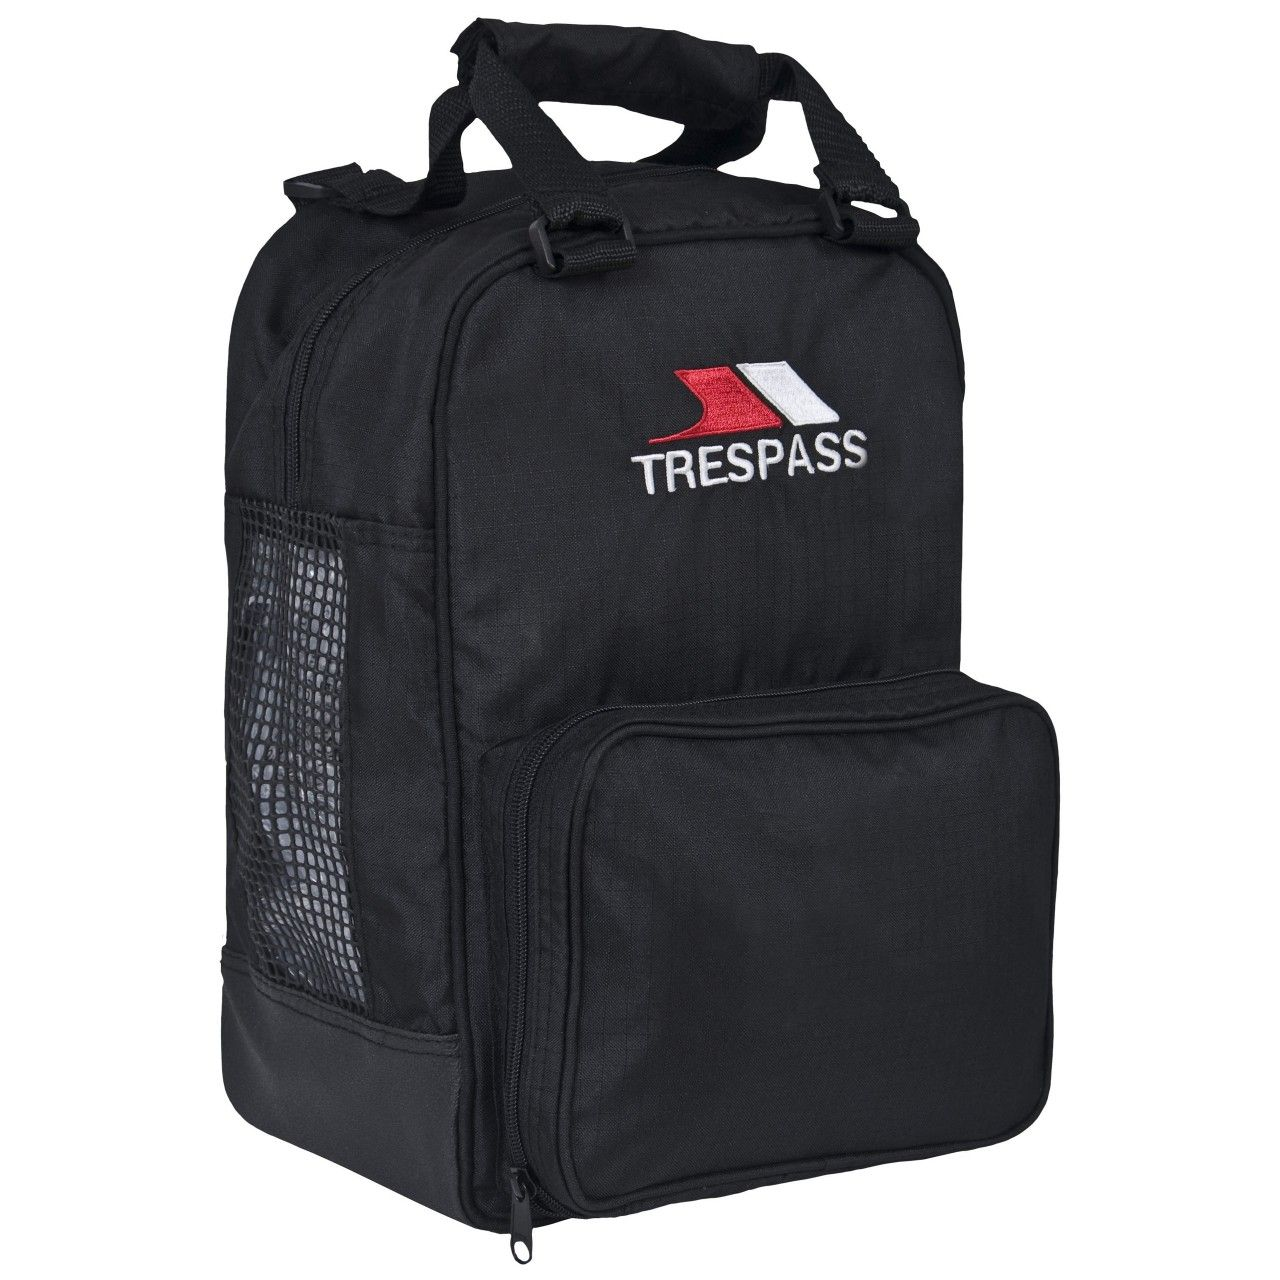 Trespass Luckless Reinforced Golf Shoe Bag